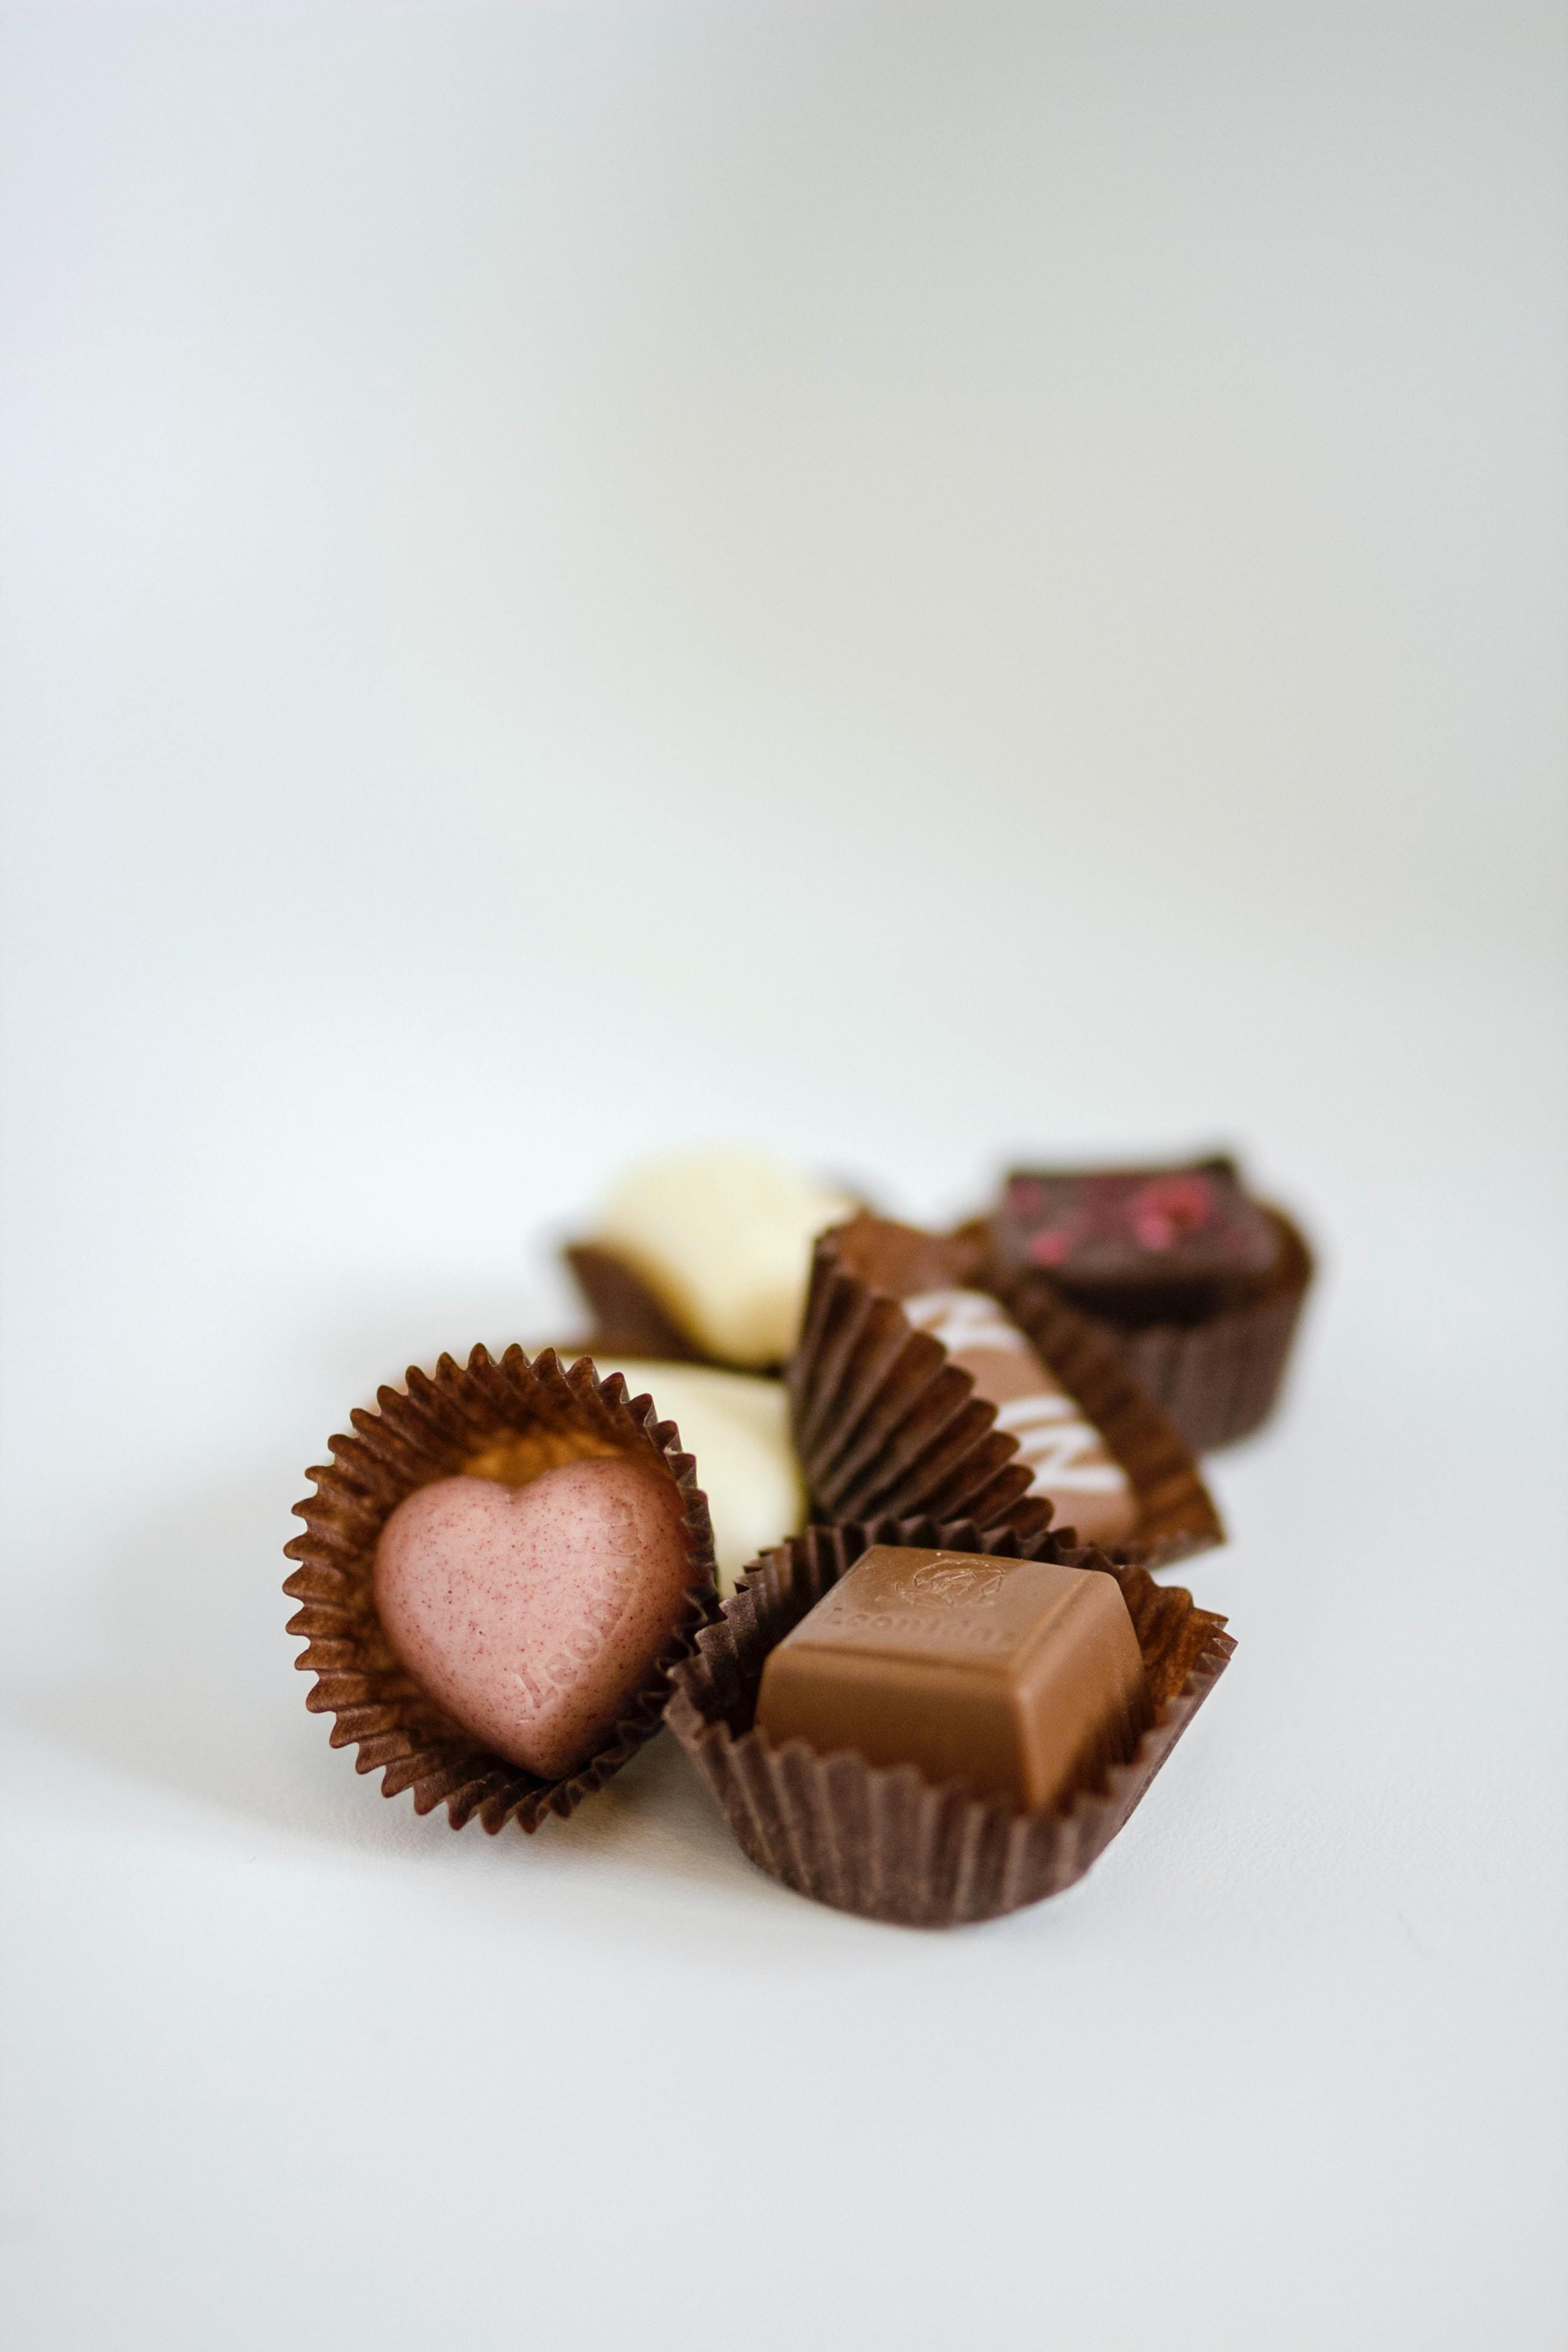 Great Nearby Chocolate Shops for National Chocolate Day-image